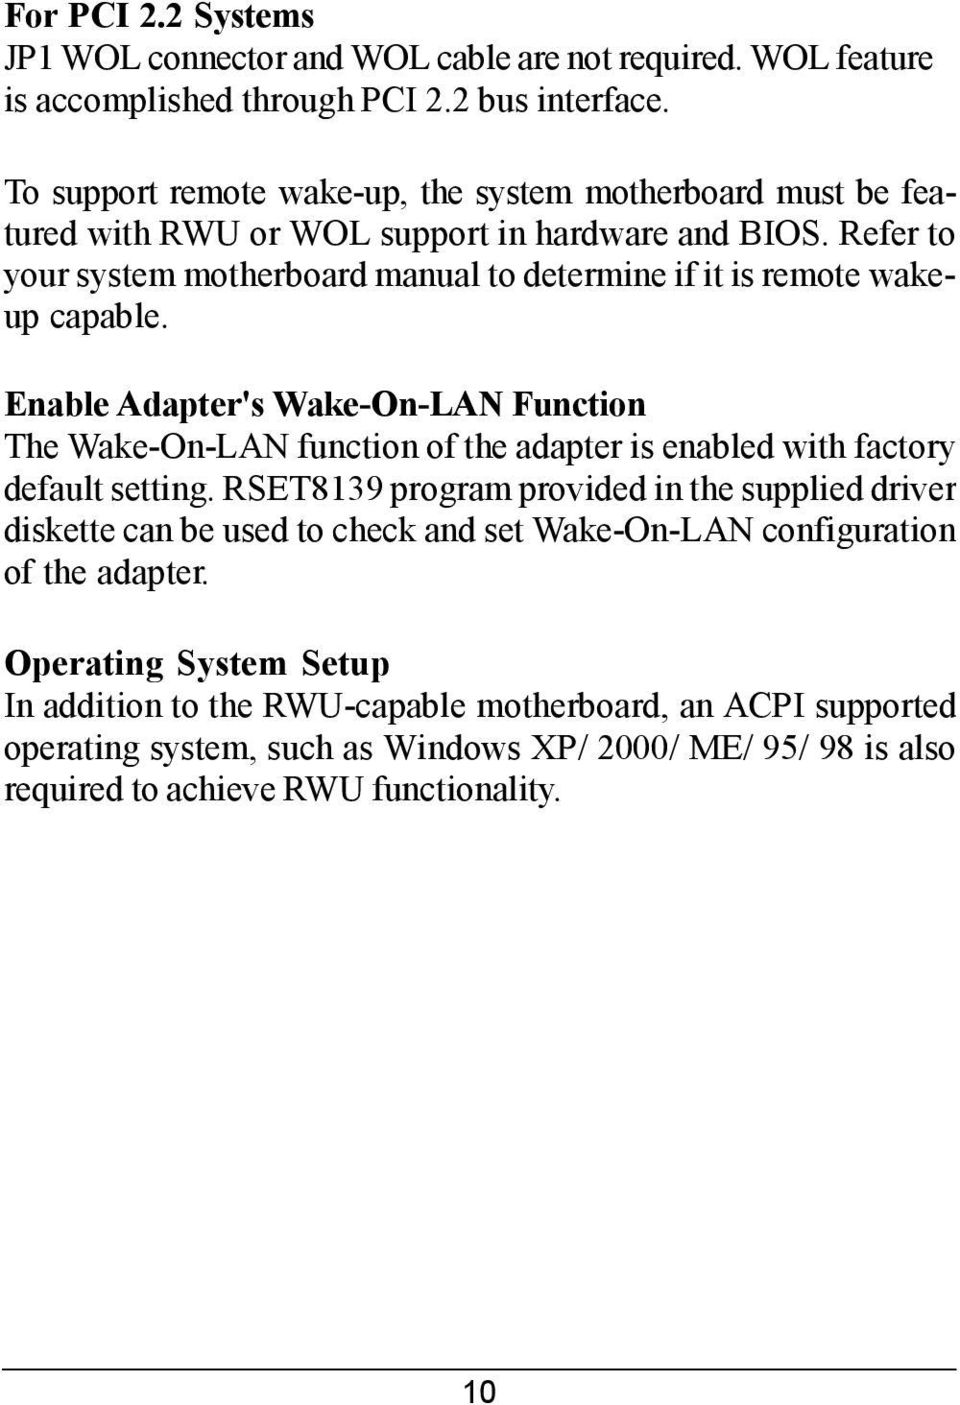 Refer to your system motherboard manual to determine if it is remote wakeup capable.